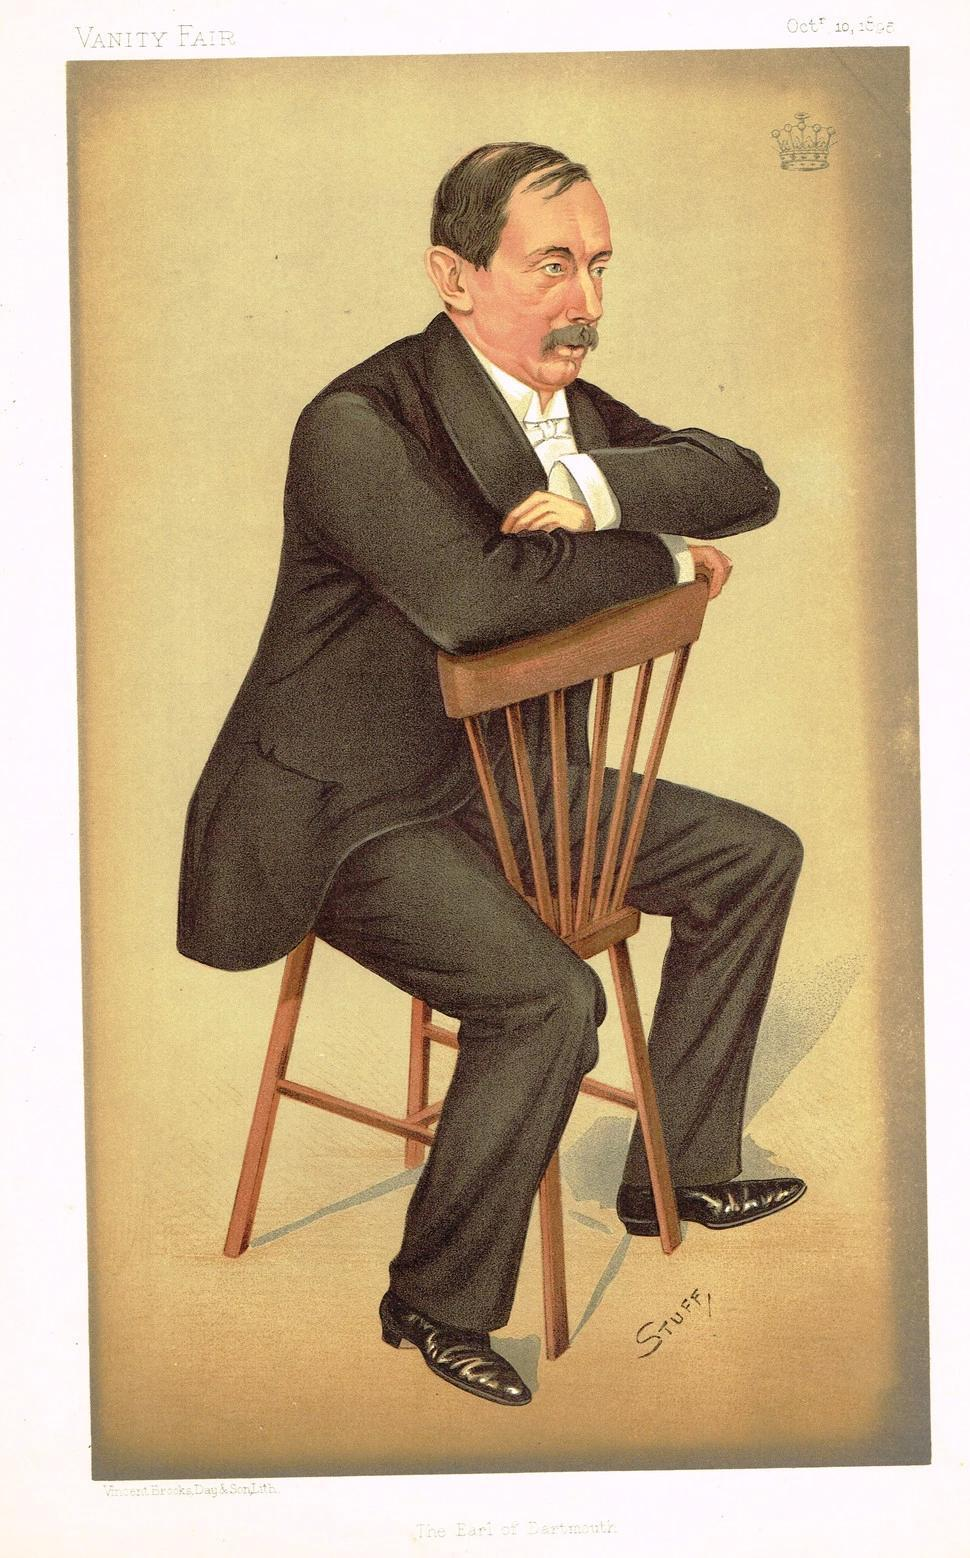 Vanity Fair Caricature